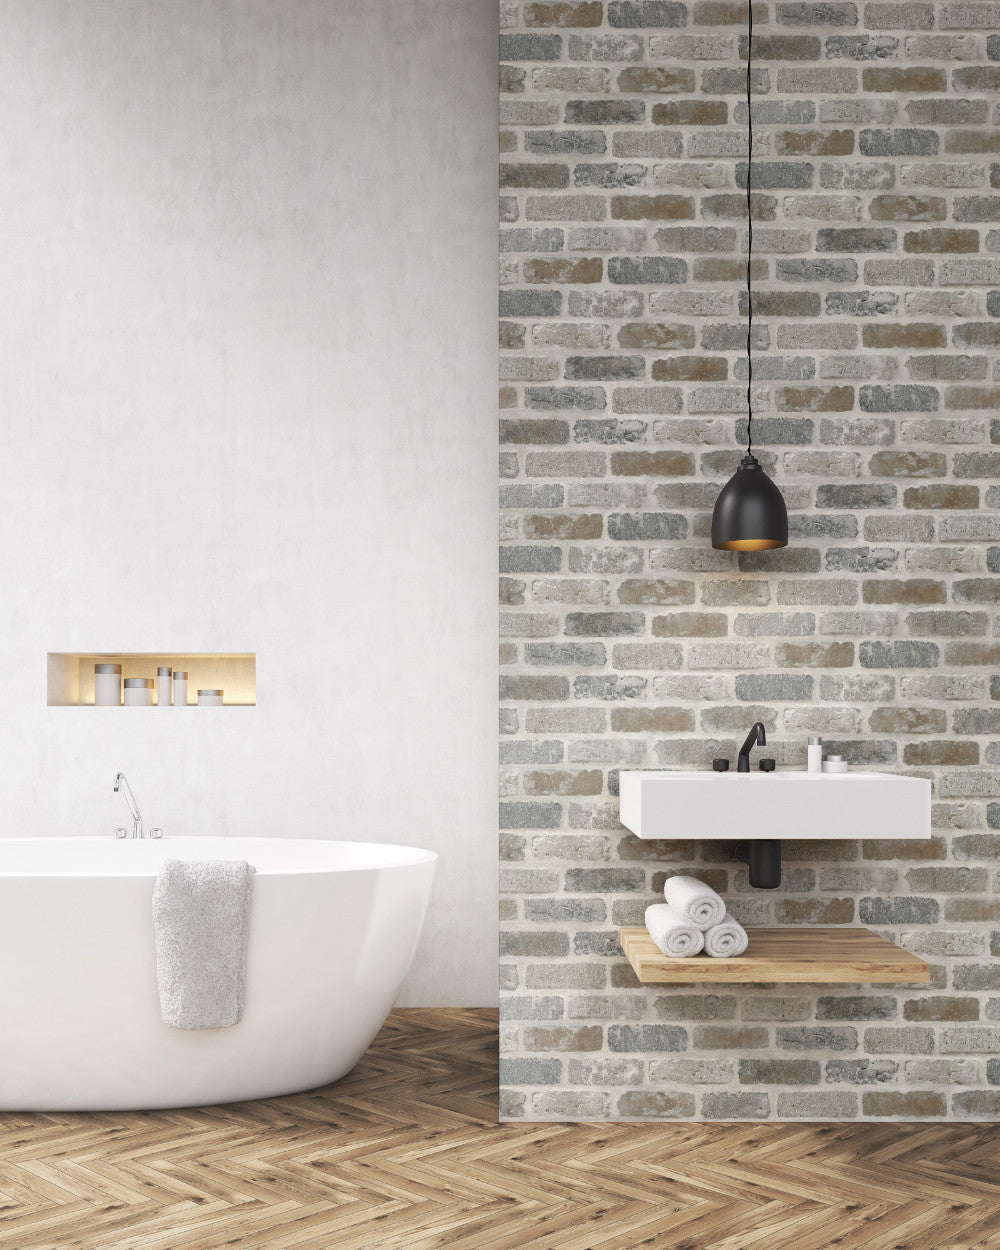 Washed Faux Brick Peel And Stick Wallpaper In Neutrals By Nextwall Burke Decor